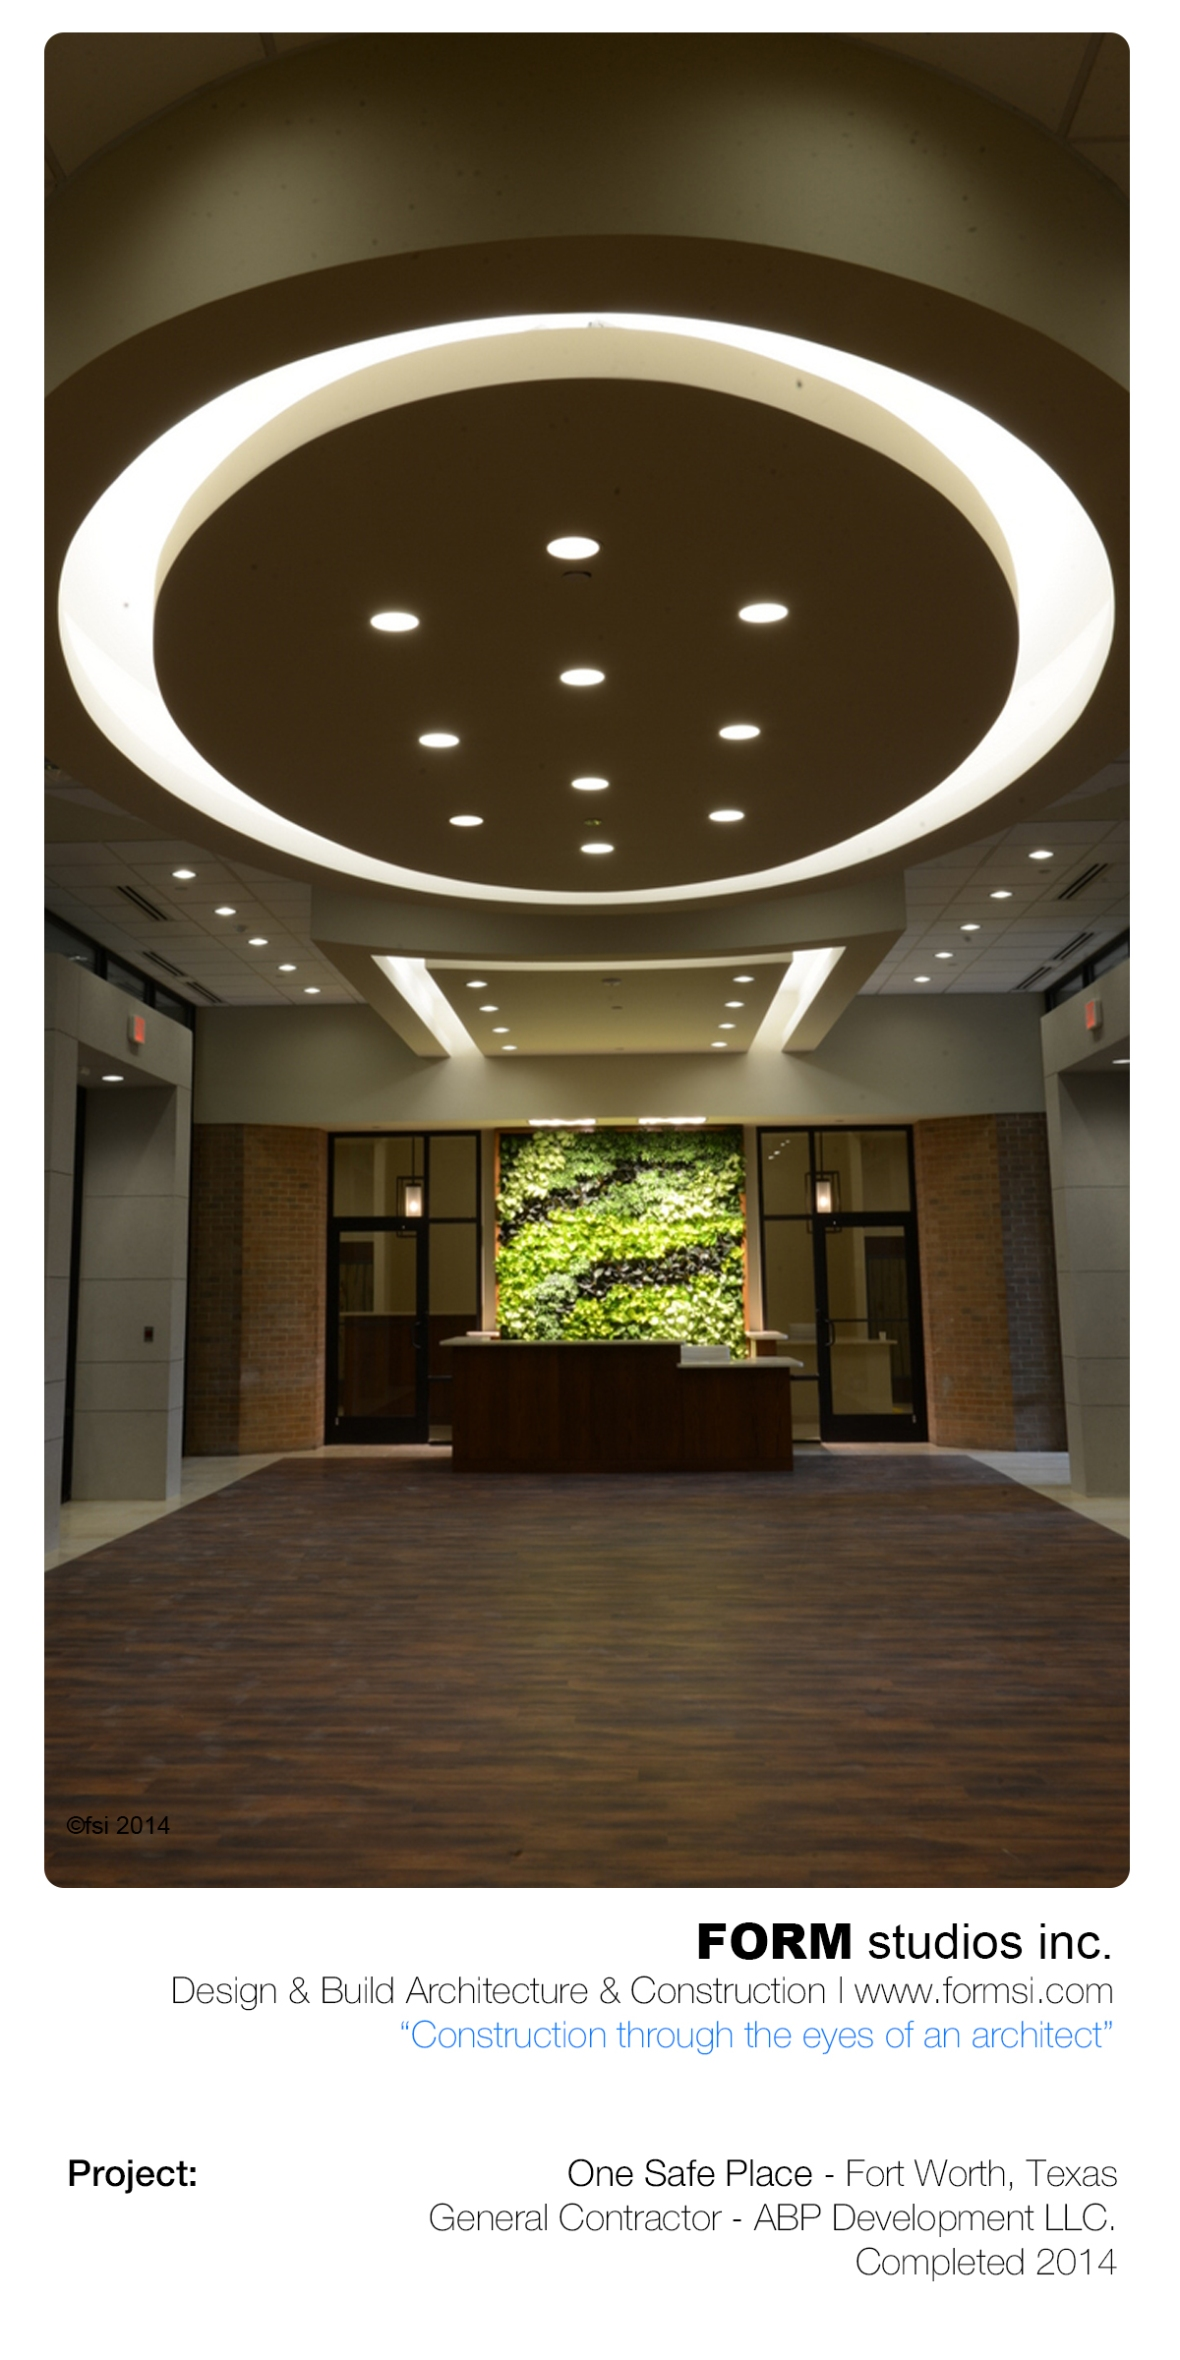 LOBBY WITH GREEN WALL AT RECEPTION